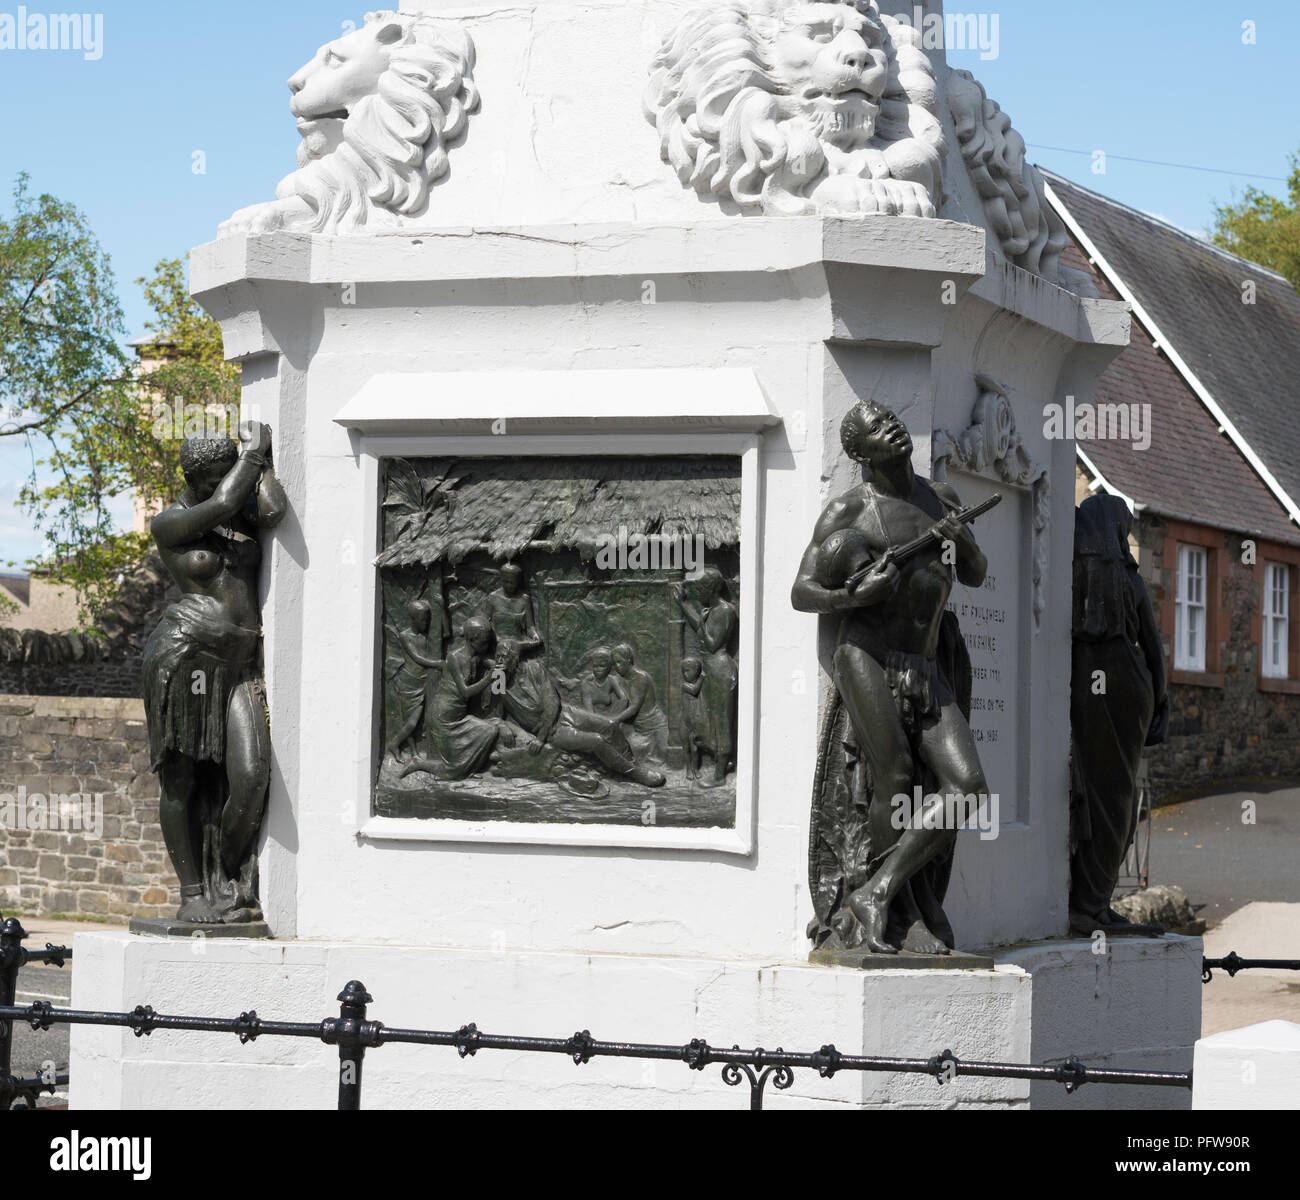 Bas relief and bronze sculptures, Mungo Park memorial, Selkirk, Scottish Borders, Scotland, UK - Stock Image